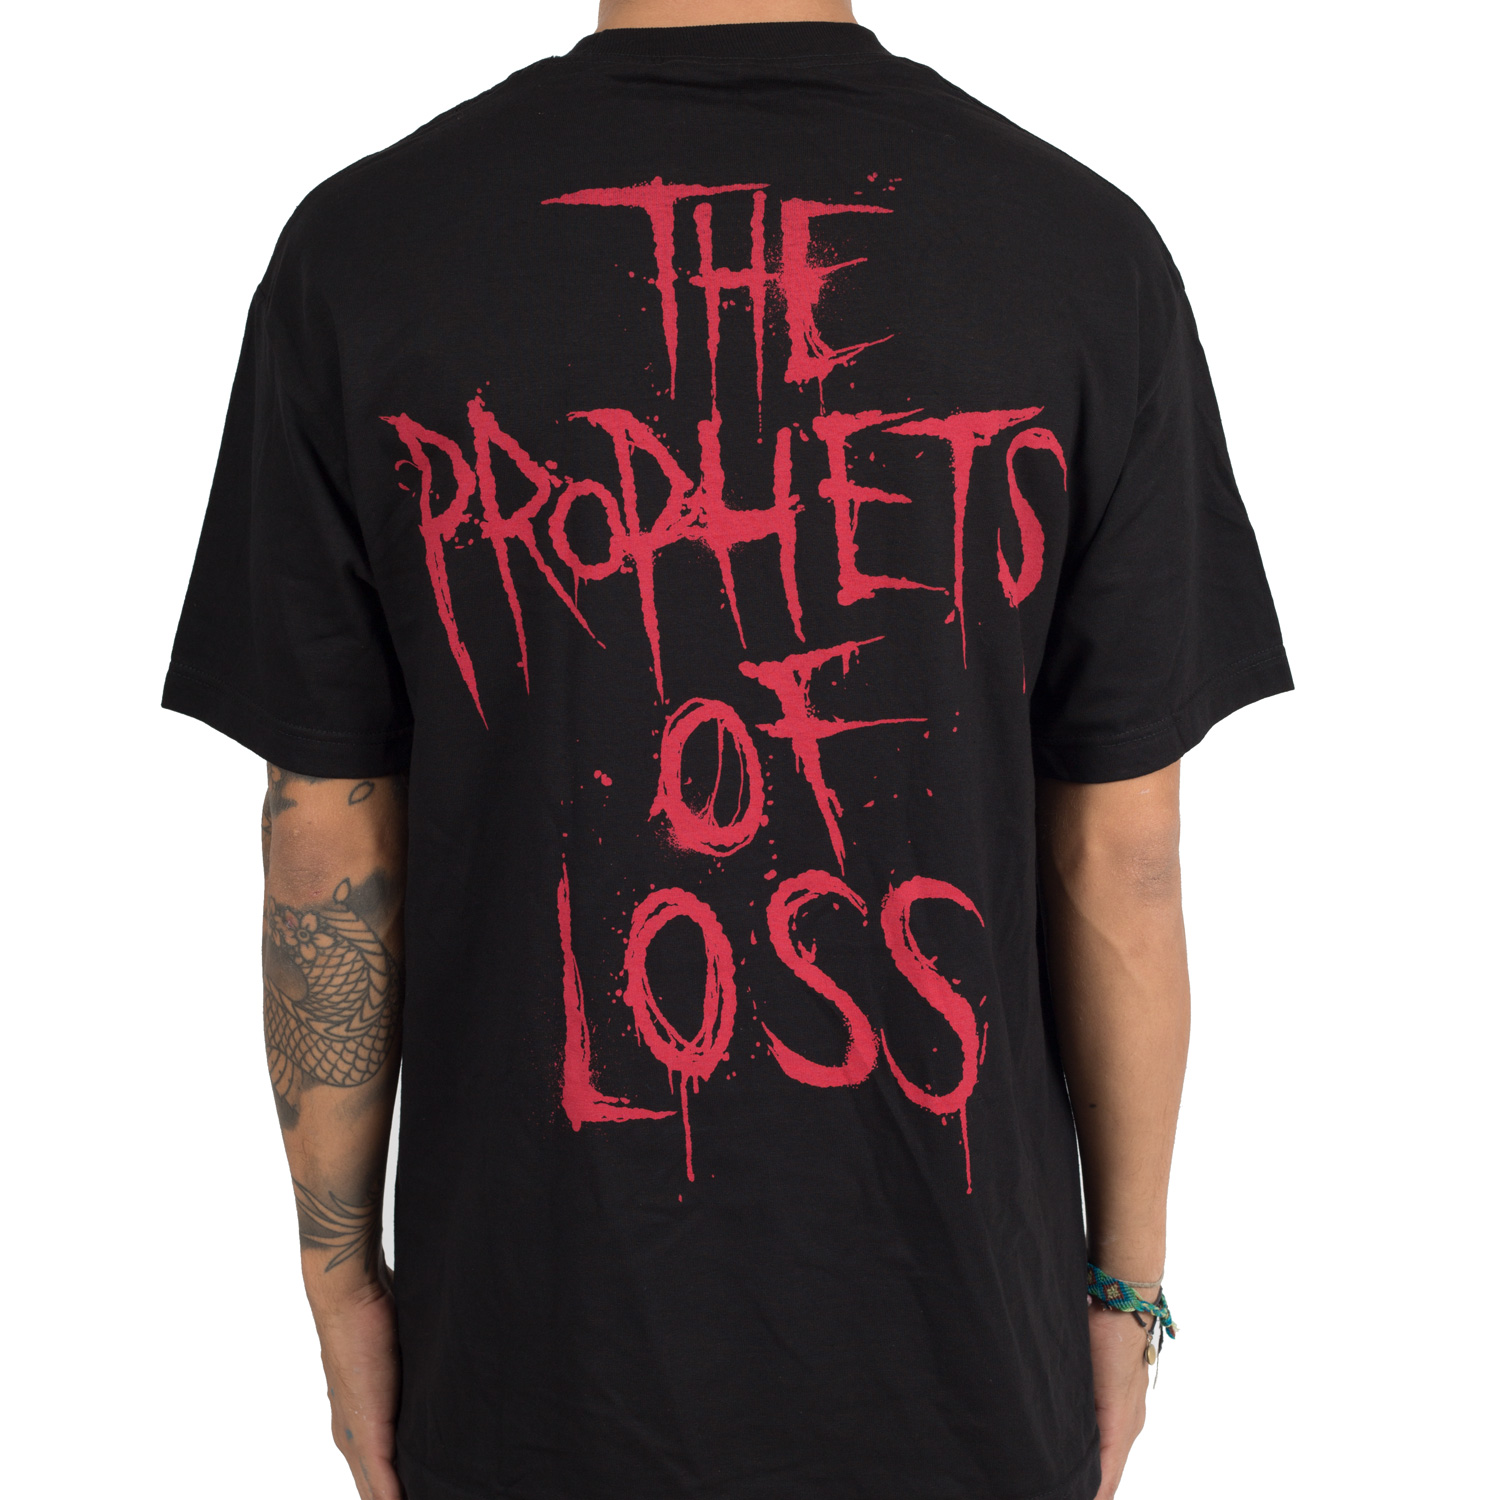 Prophets Of Loss